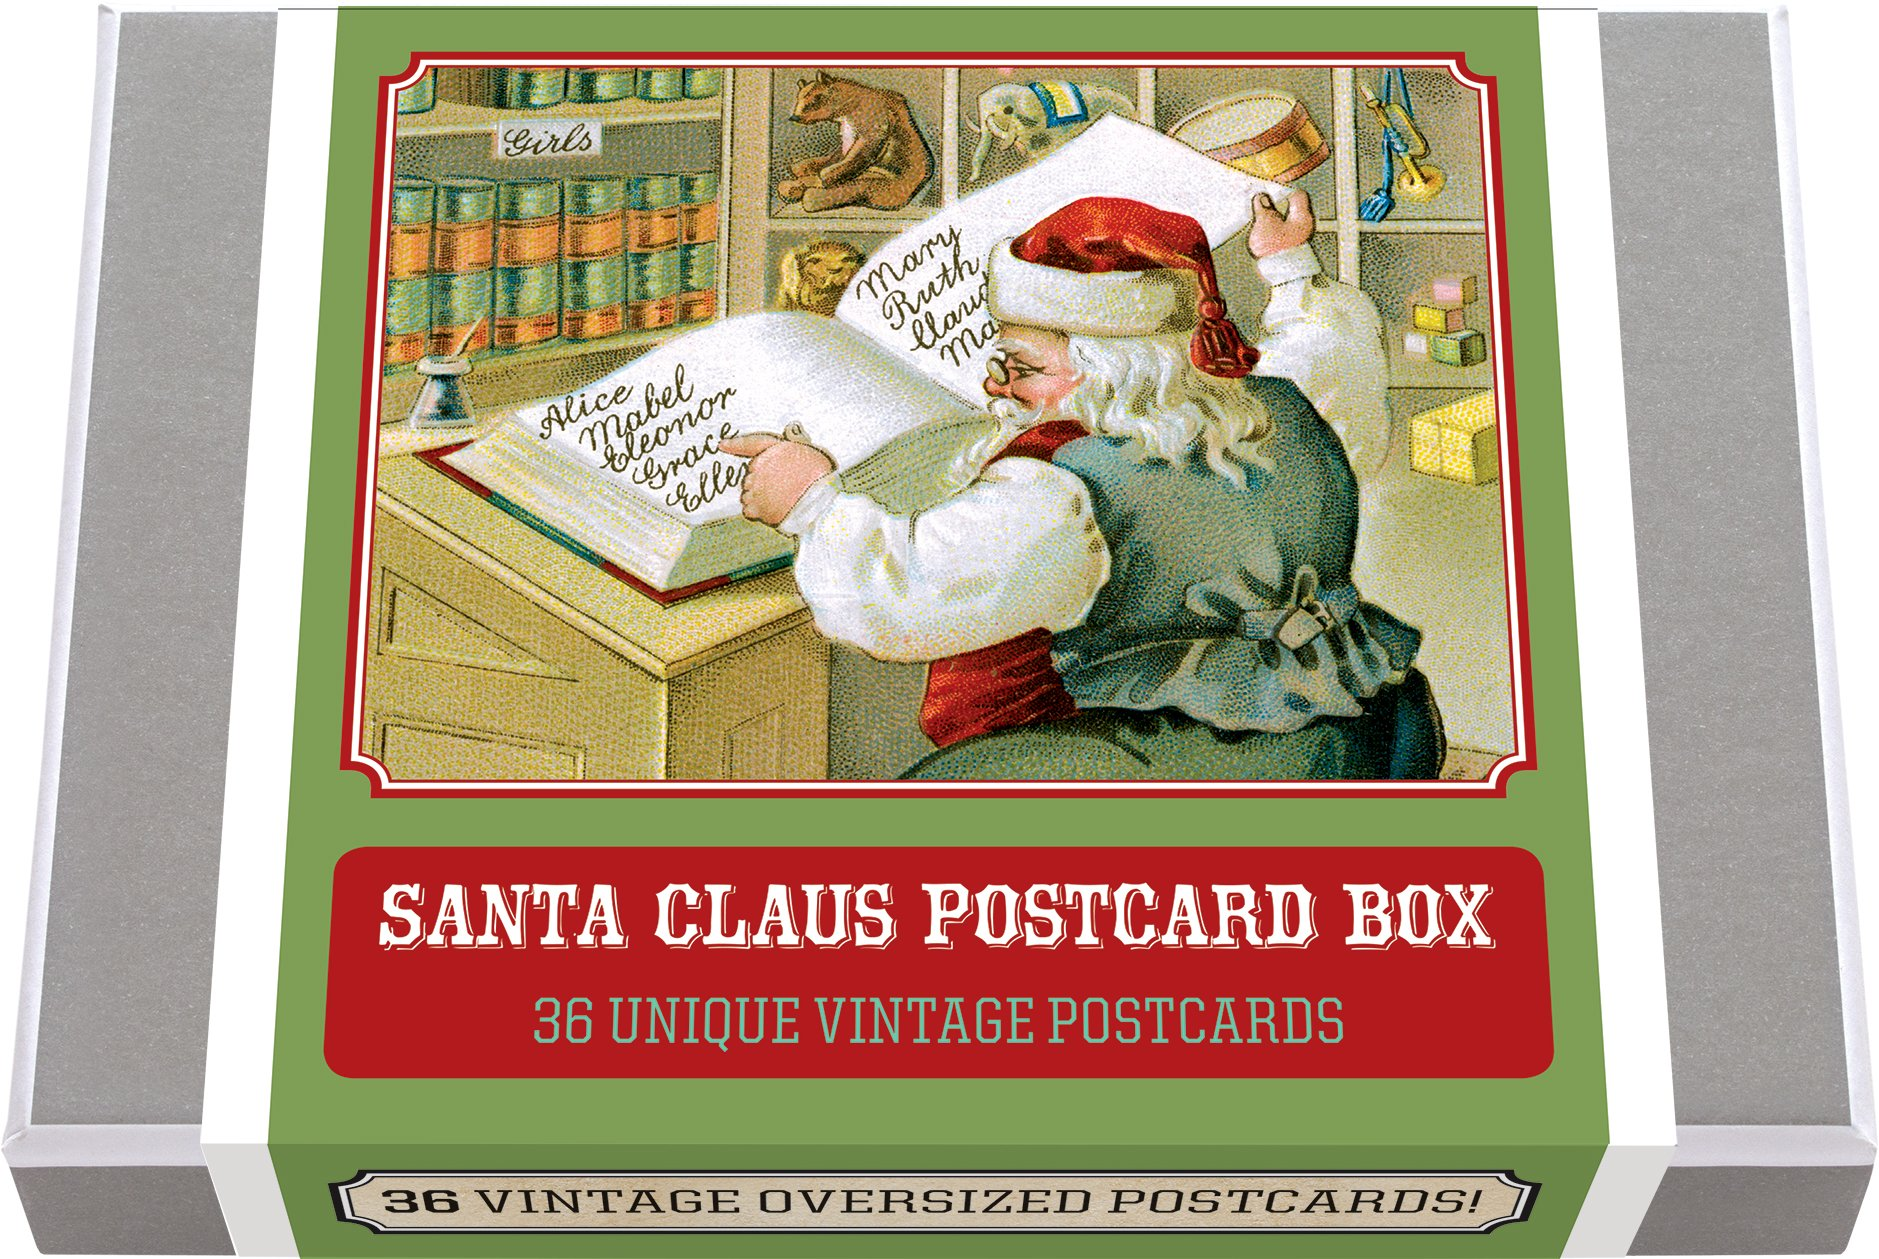 Santa Claus Postcard Box - 36 Unique Vintage Postcards (Postcard Books-Postcard Books)